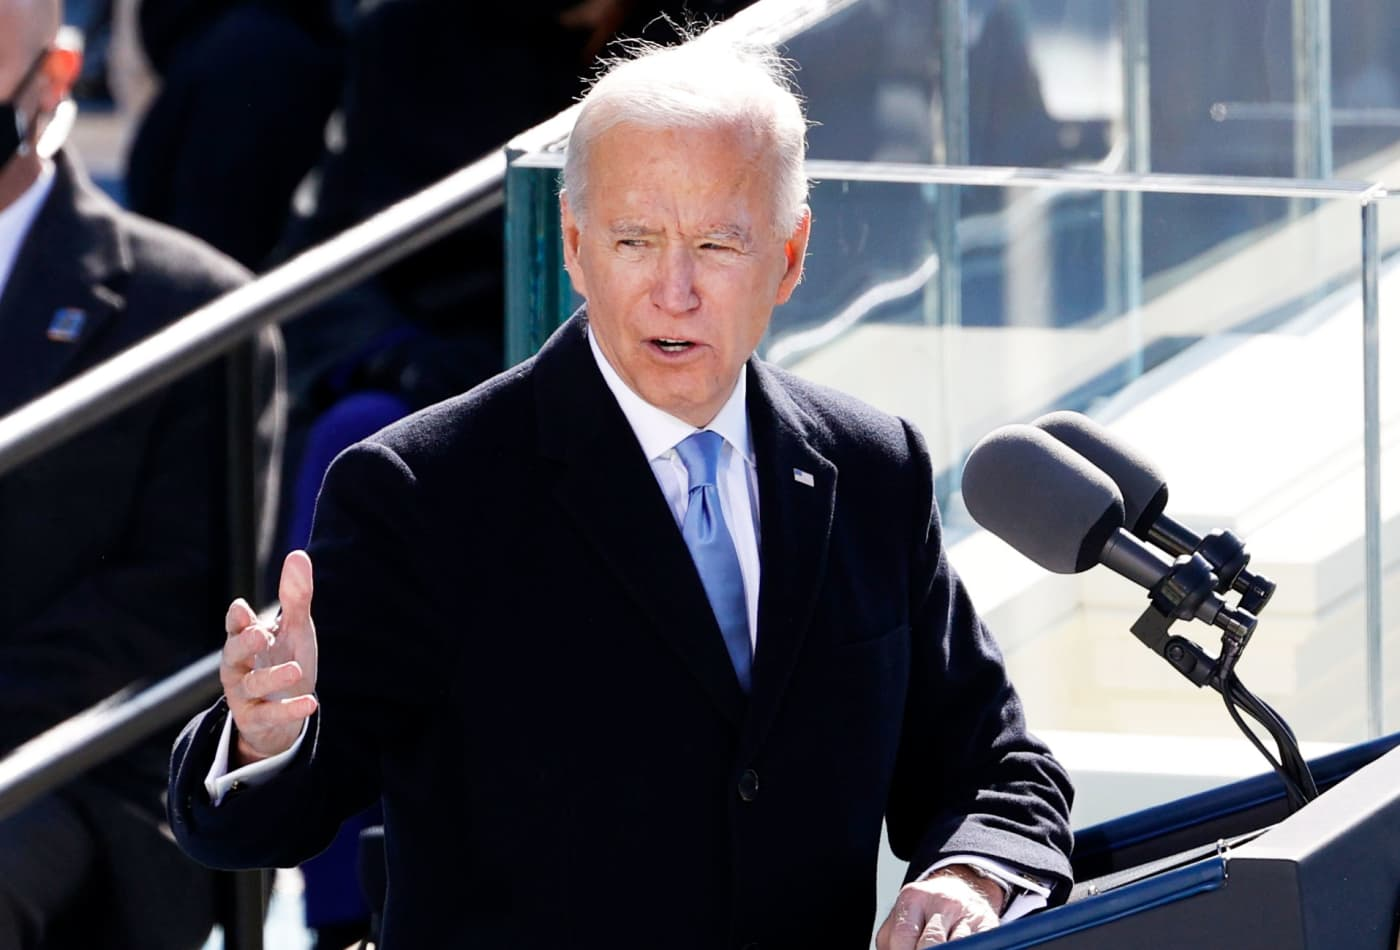 Read the full letter Amazon sent to Biden offering to help with Covid-19 vaccines